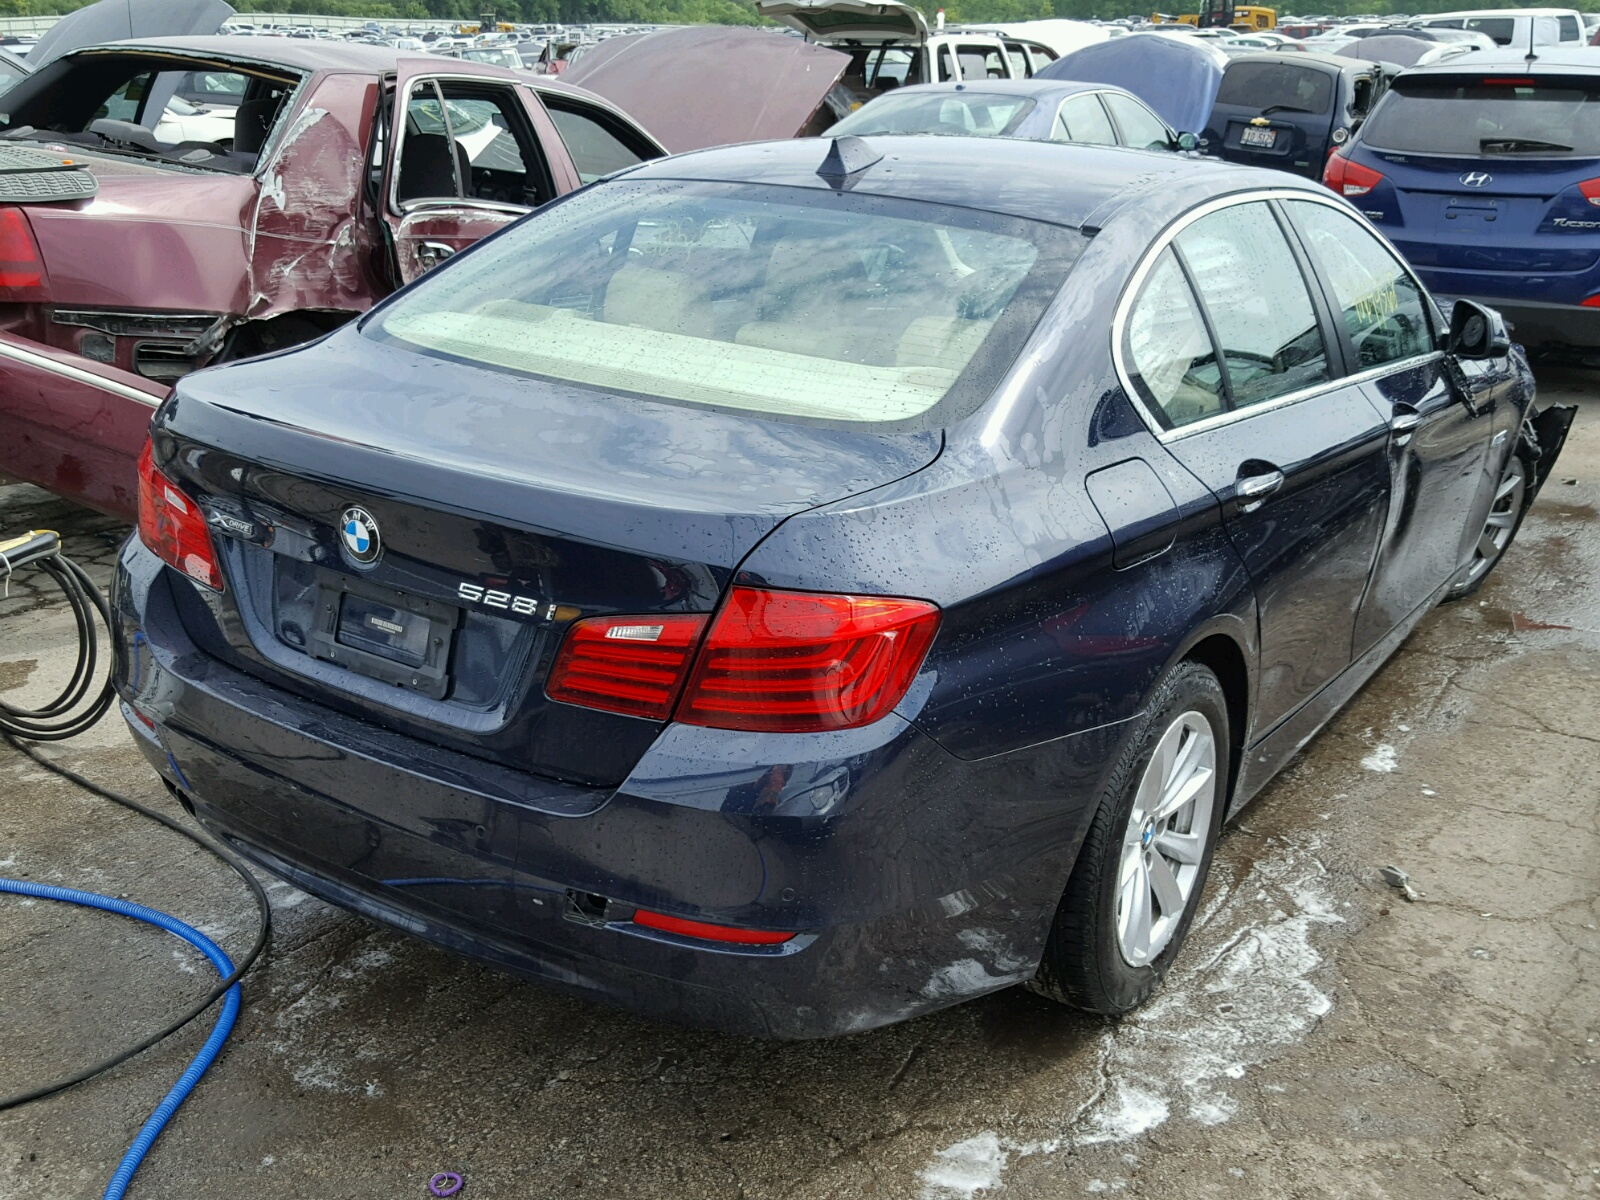 hight resolution of  wba5a7c58ed620109 2014 bmw 528 xi 2 0l rear view wba5a7c58ed620109